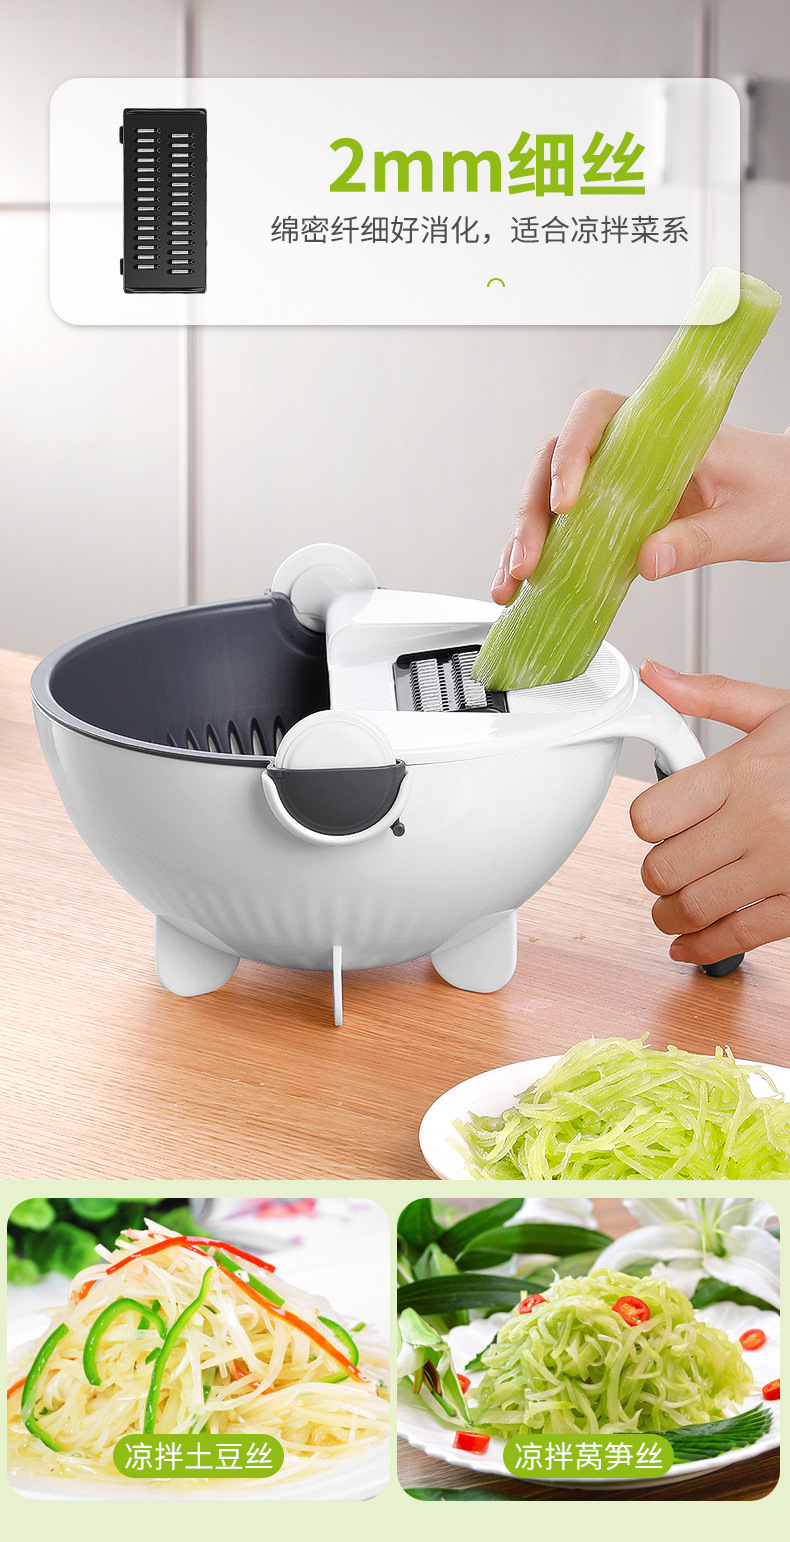 Dorpshipping Home kitchen multi-function vegetable slicer vegetable cutter manual with replaceable blade